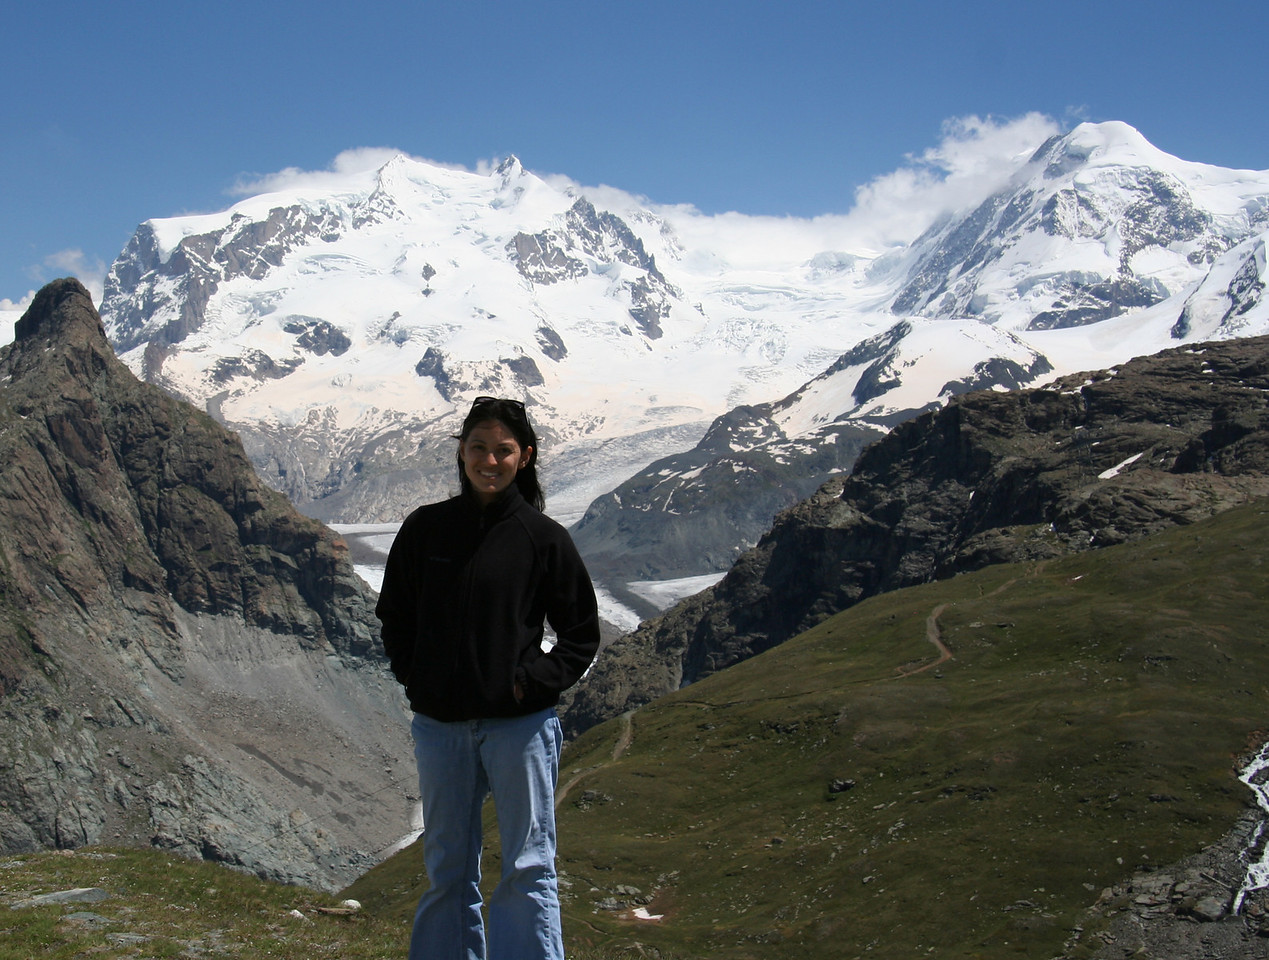 Another view of Dufourspitze and me. Too bad I can't put my arm around it.